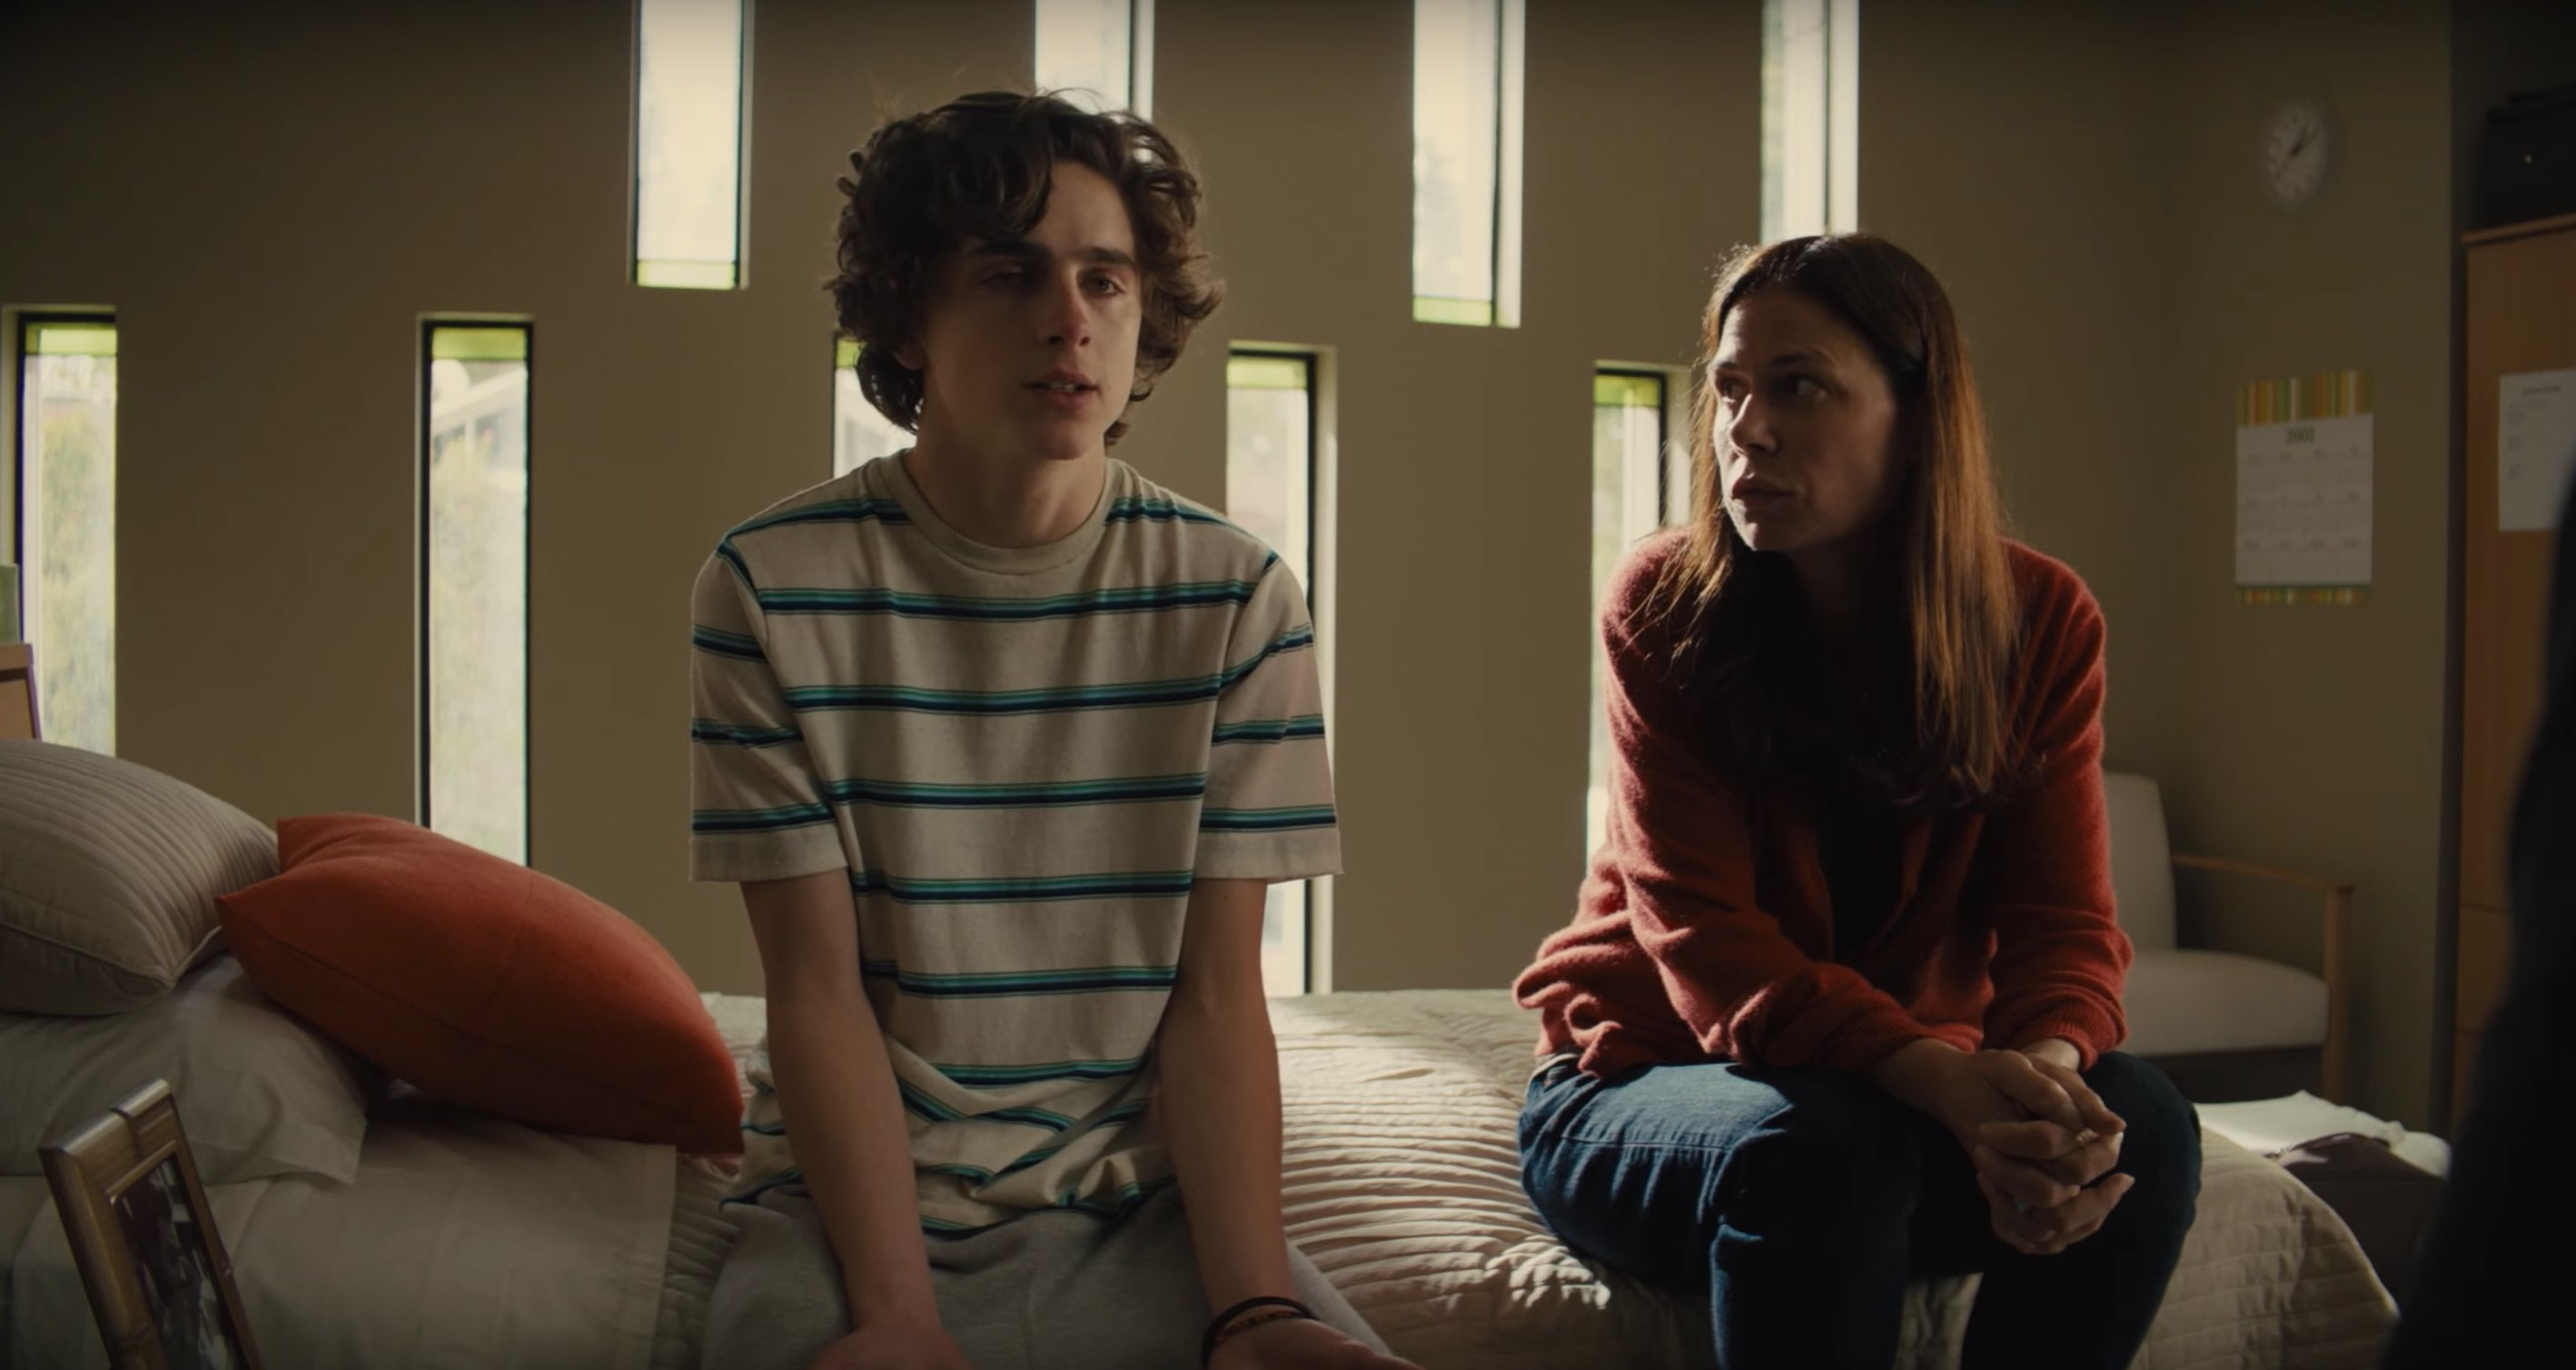 TIMOTHÉE CHALAMET'Lİ BEAUTIFUL BOY'DAN İLK UZUN FRAGMAN